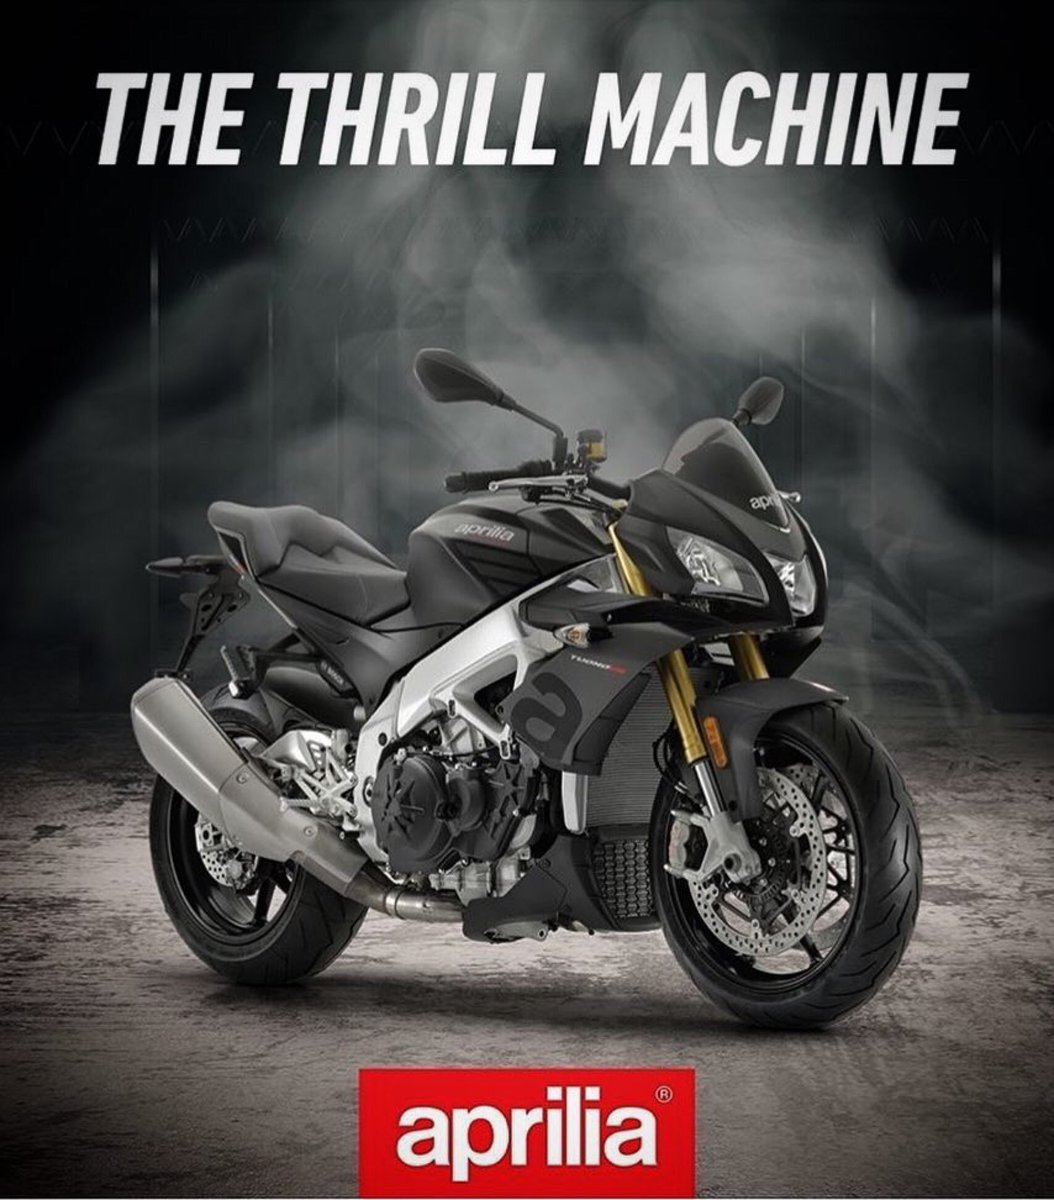 """Even after winning the @CycleWorldMag """"Best Standard Bike"""" for the second year in a row, the 2019 Tuono V4 1100 RR continues its evolution as a class leading performance machine.  #aprilia 